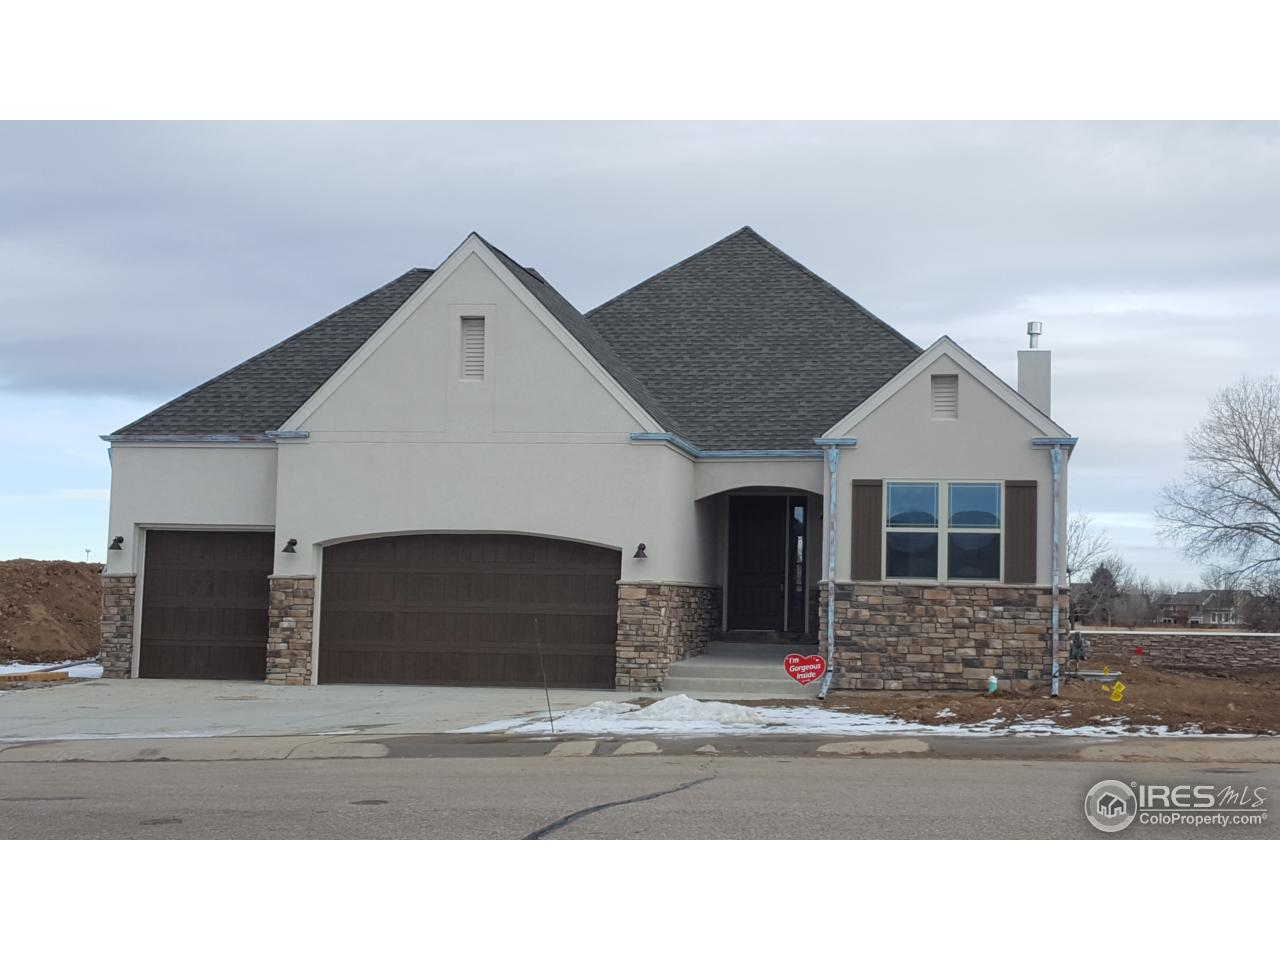 4826 Corsica Dr, Fort Collins, CO 80526